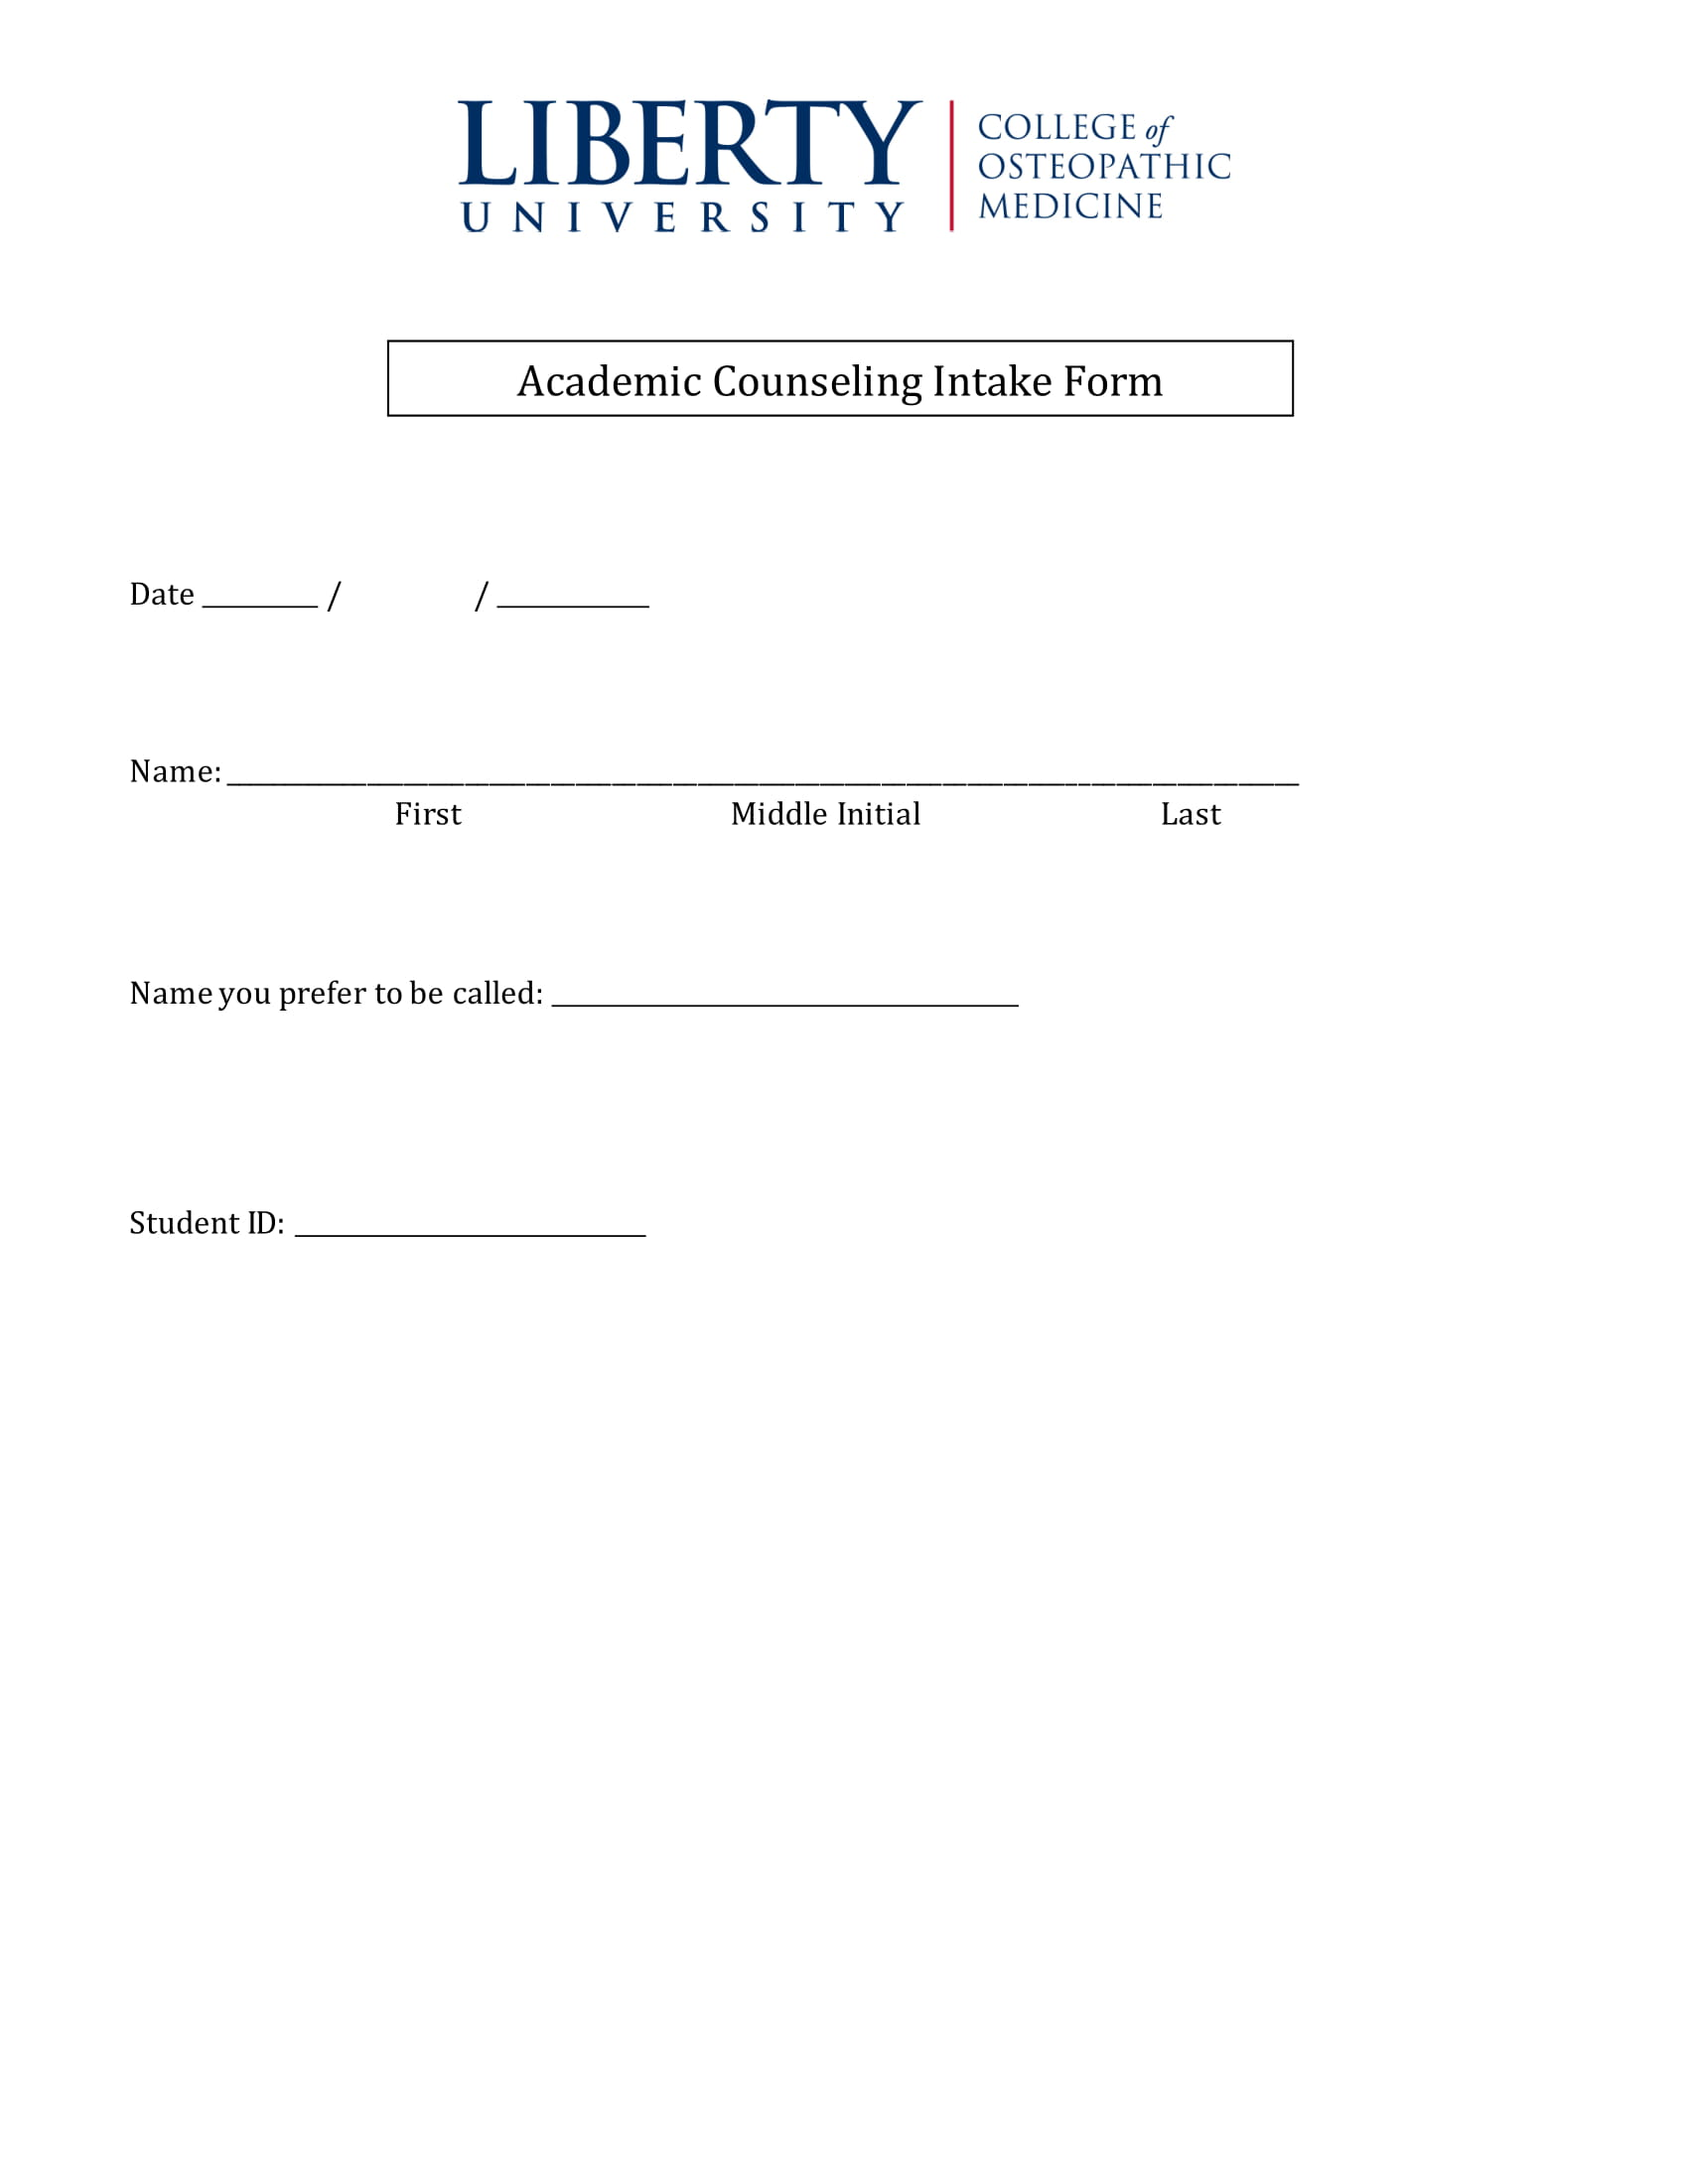 academic counseling intake form 1